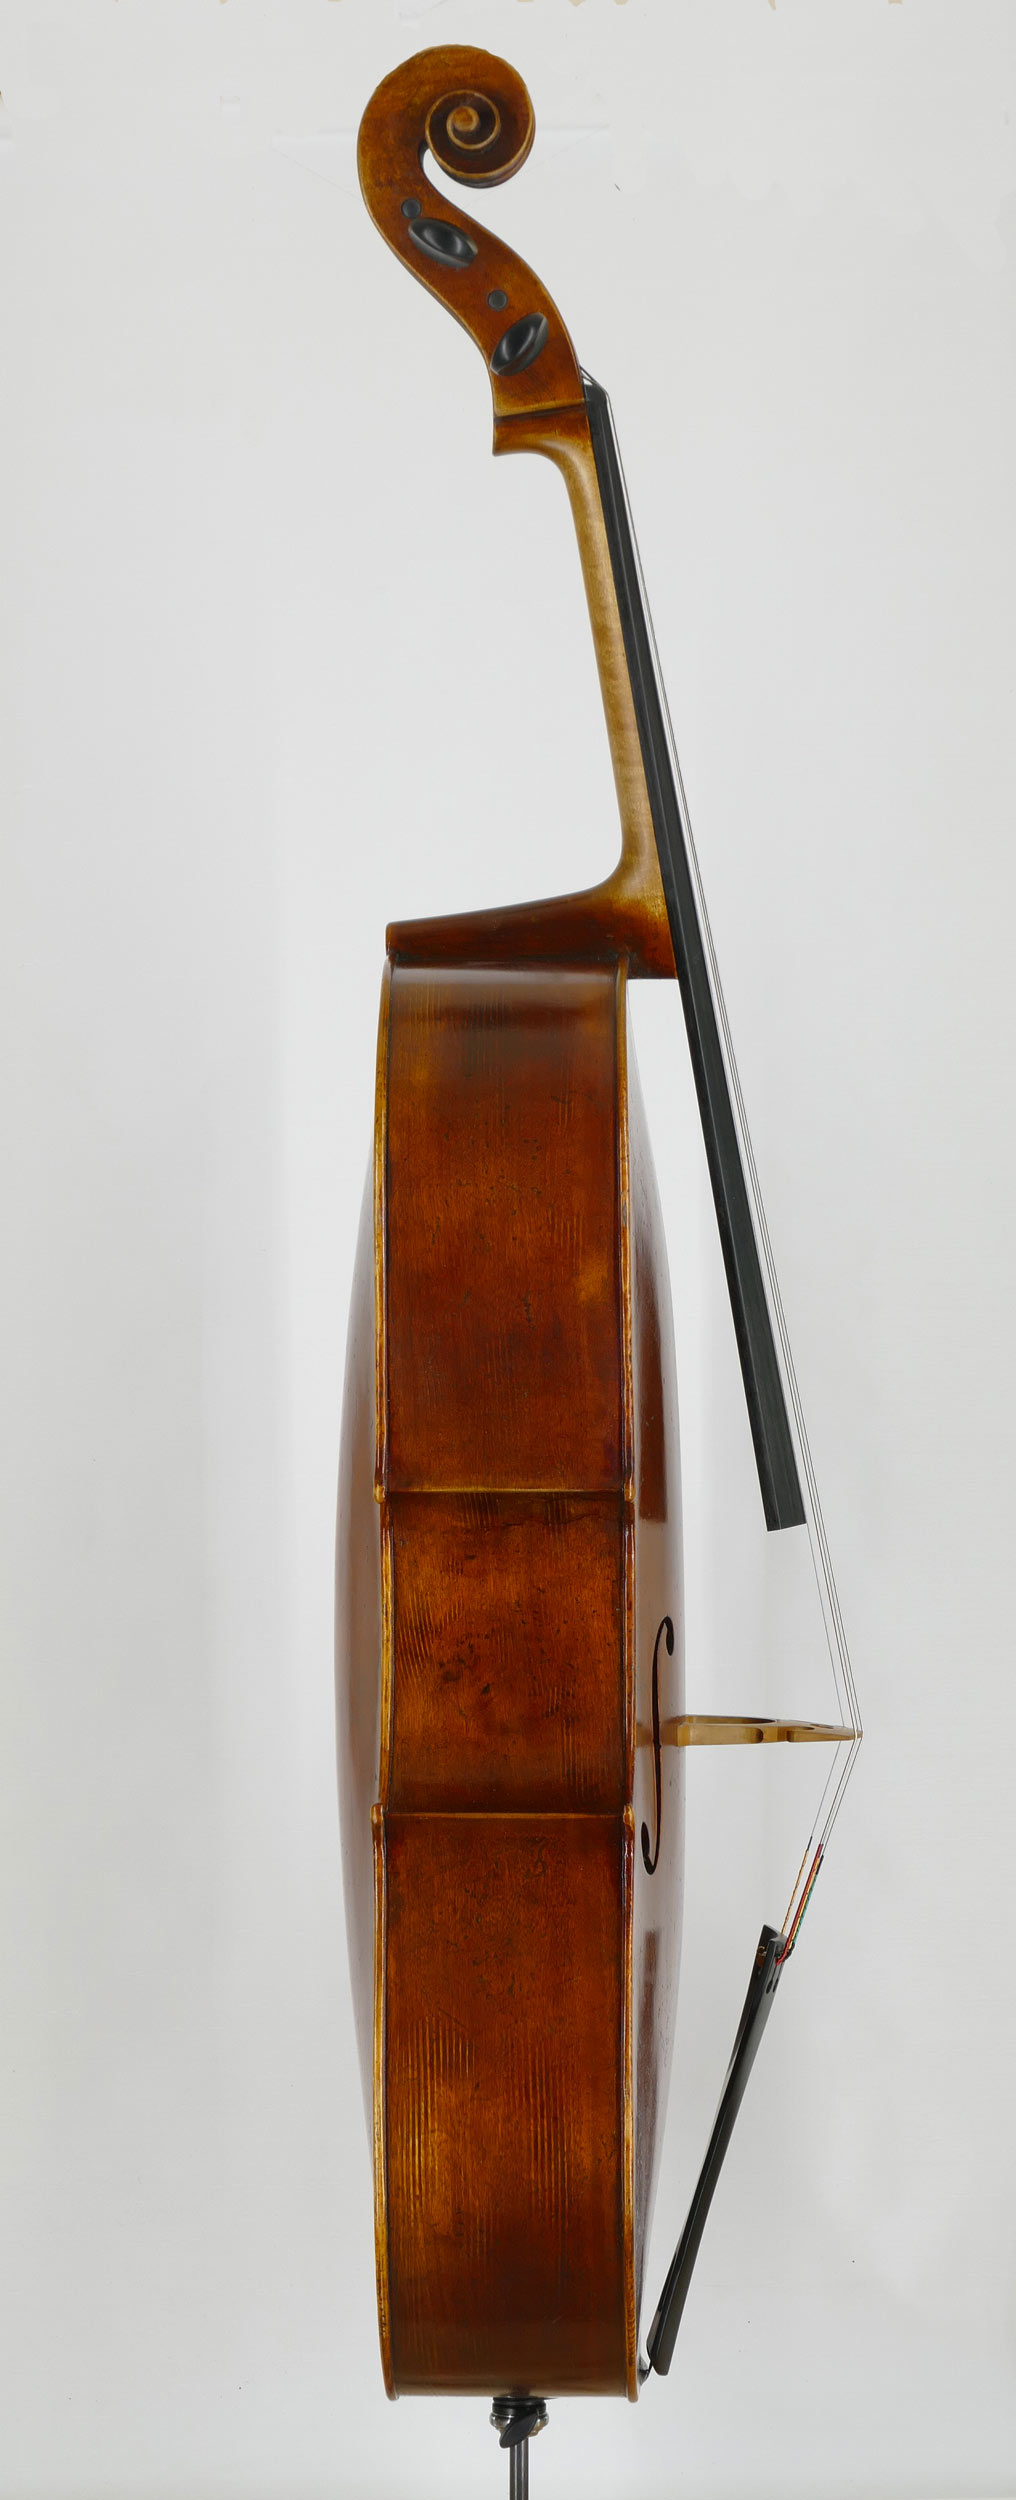 Ruggieri Model Cello Quot Great Fire Of London Quot Carruthers